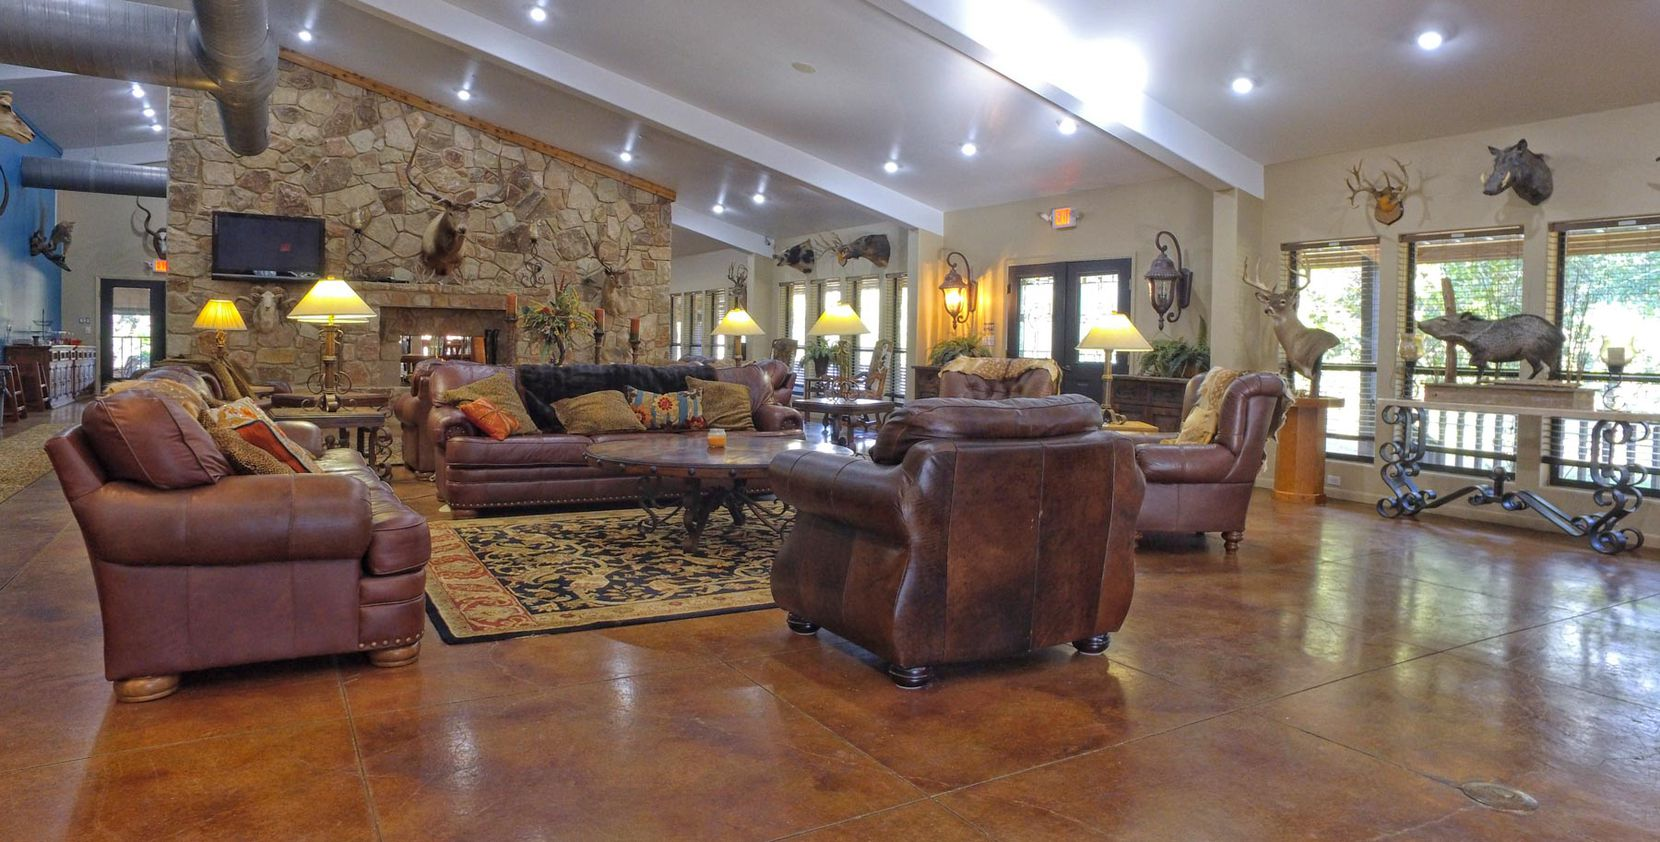 The main lodge has several living areas.